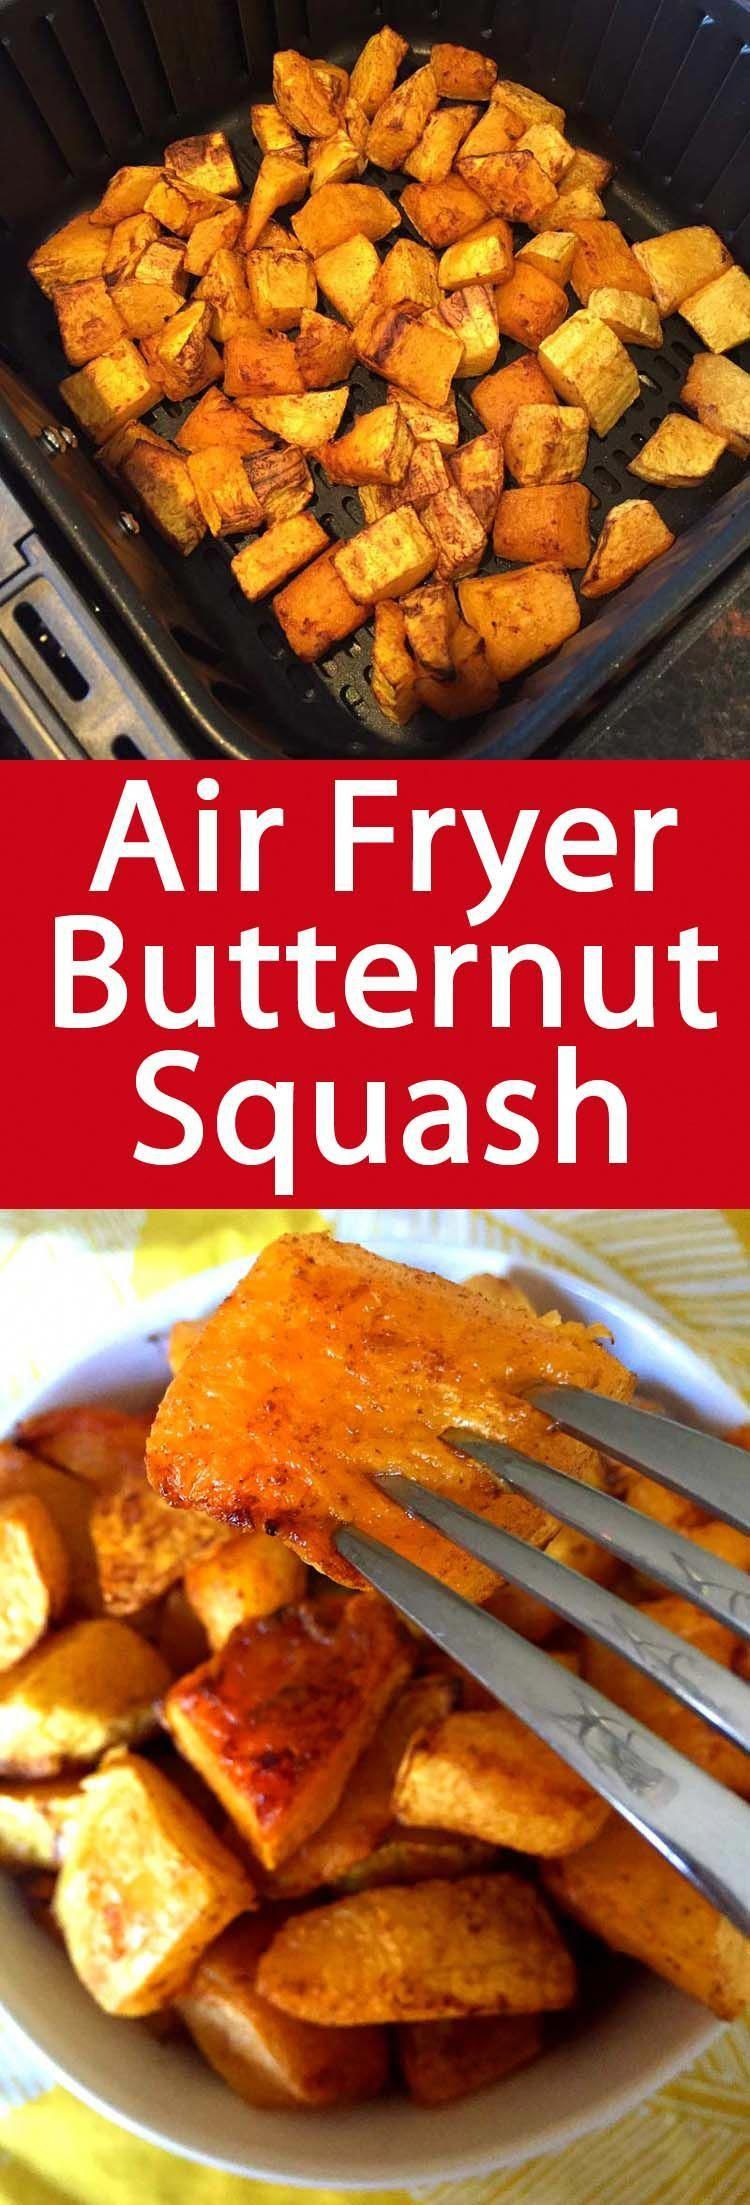 Air Fryer Roasted Butternut Squash Cubes Recipe in 2020